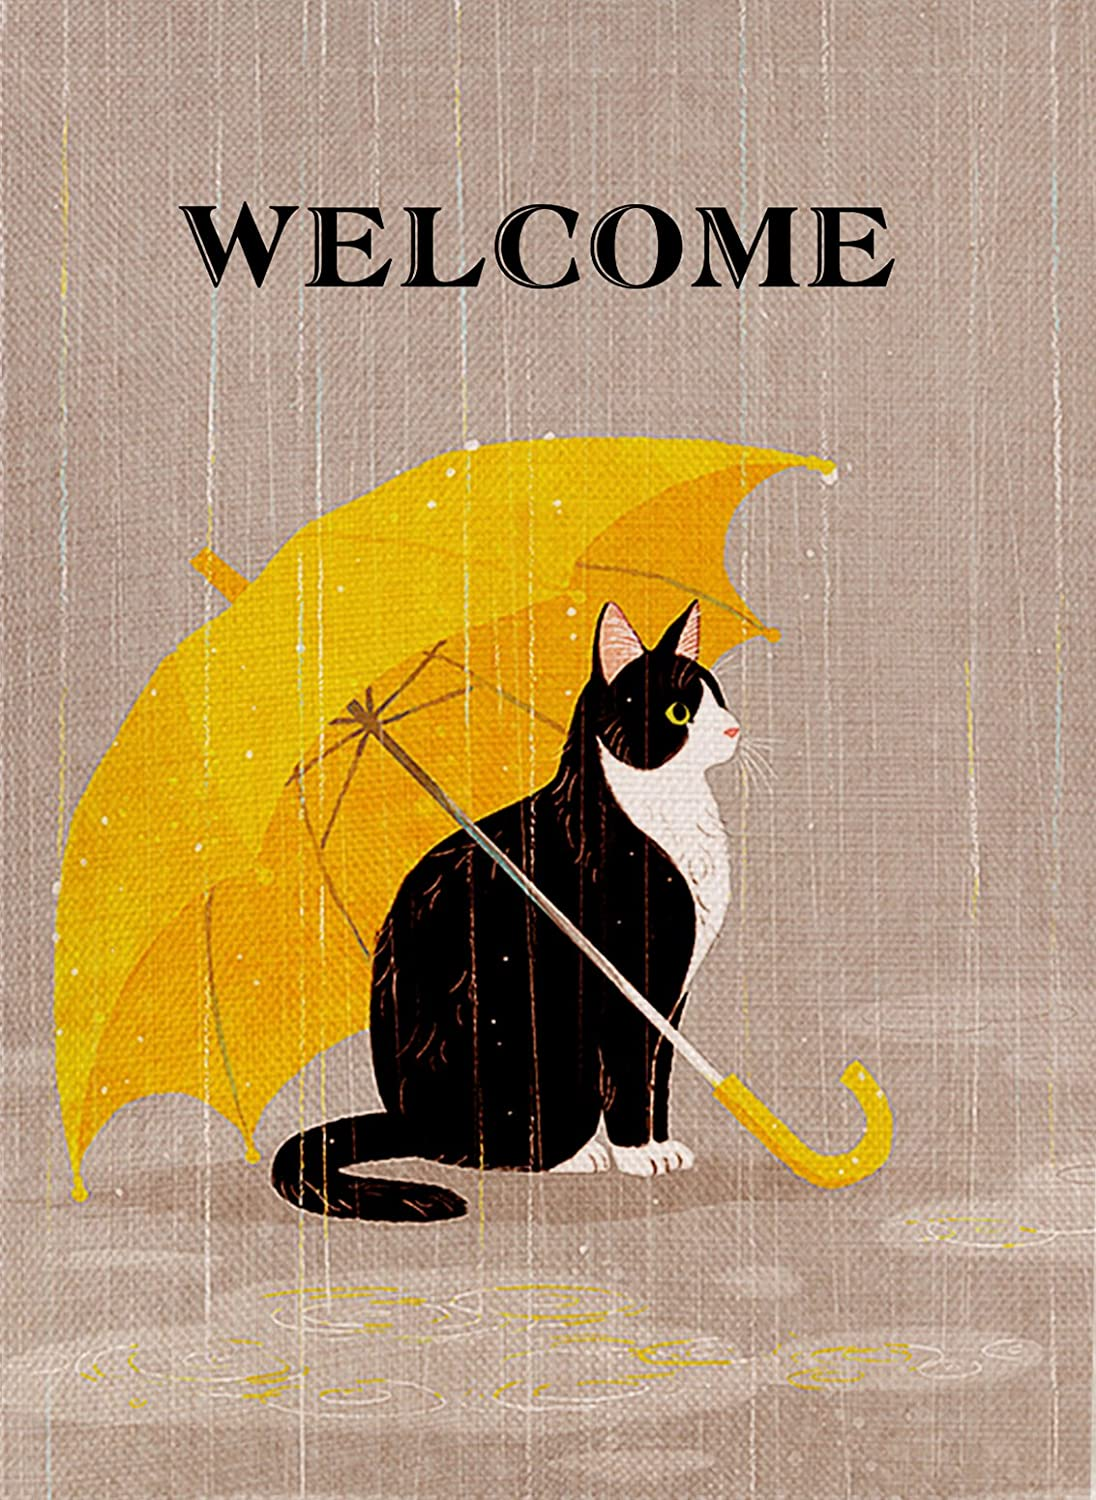 Dyrenson Home Decorative Outdoor Double Sided Quote Garden Flag Yellow Welcome Cat, House Yard Flag Kitten, Funny Garden Yard Decorations, Umbrella Outdoor Flag 12.5 x 18 Spring Gift